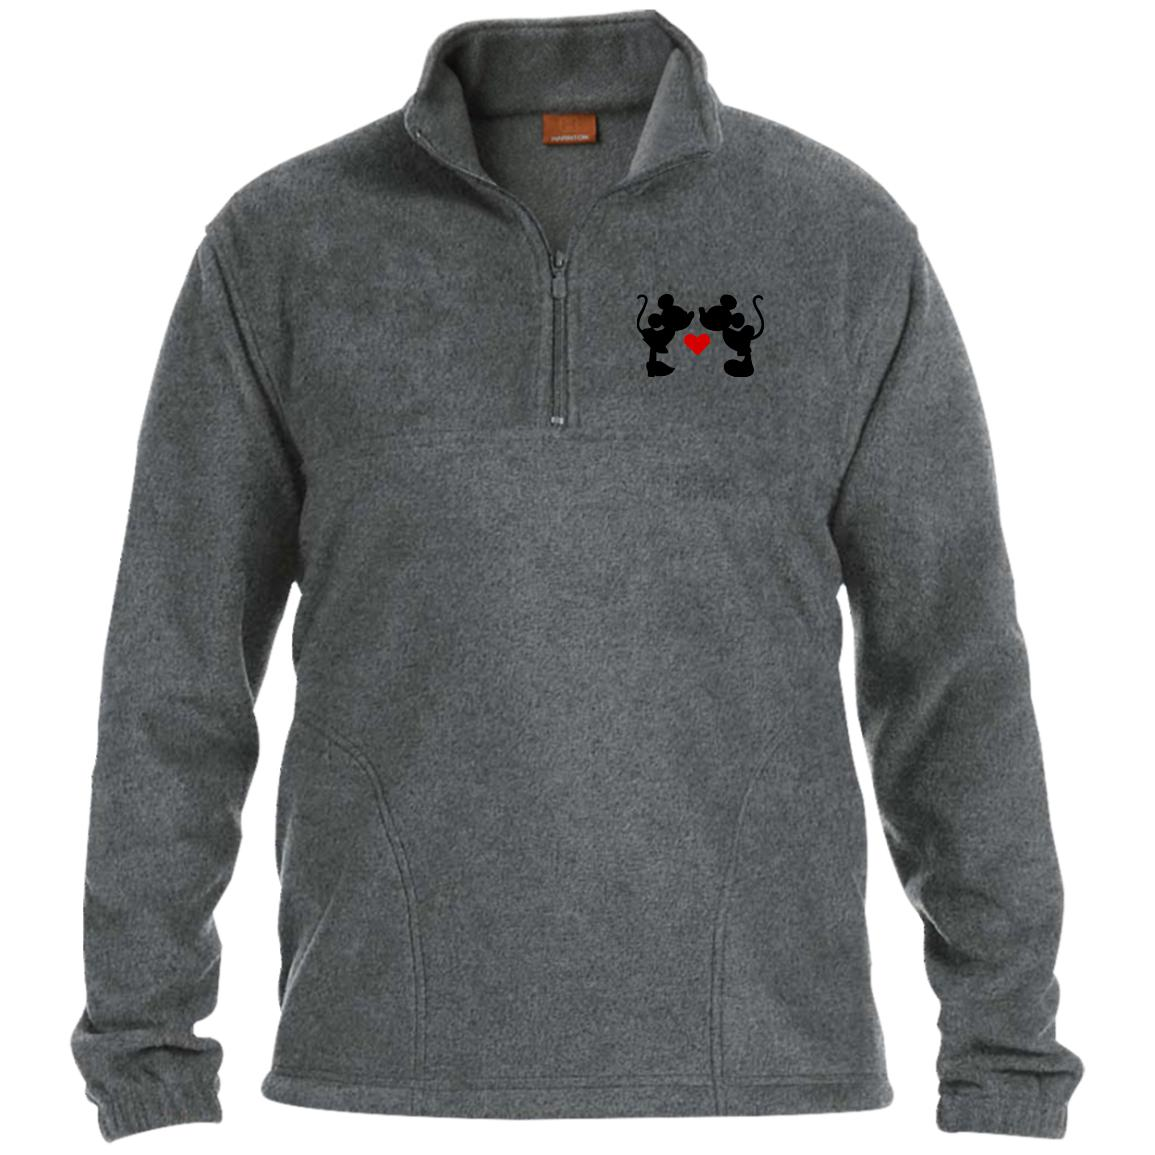 Mickey & Minnie Kissing Embroidered 1/4 Zip Fleece Pullover